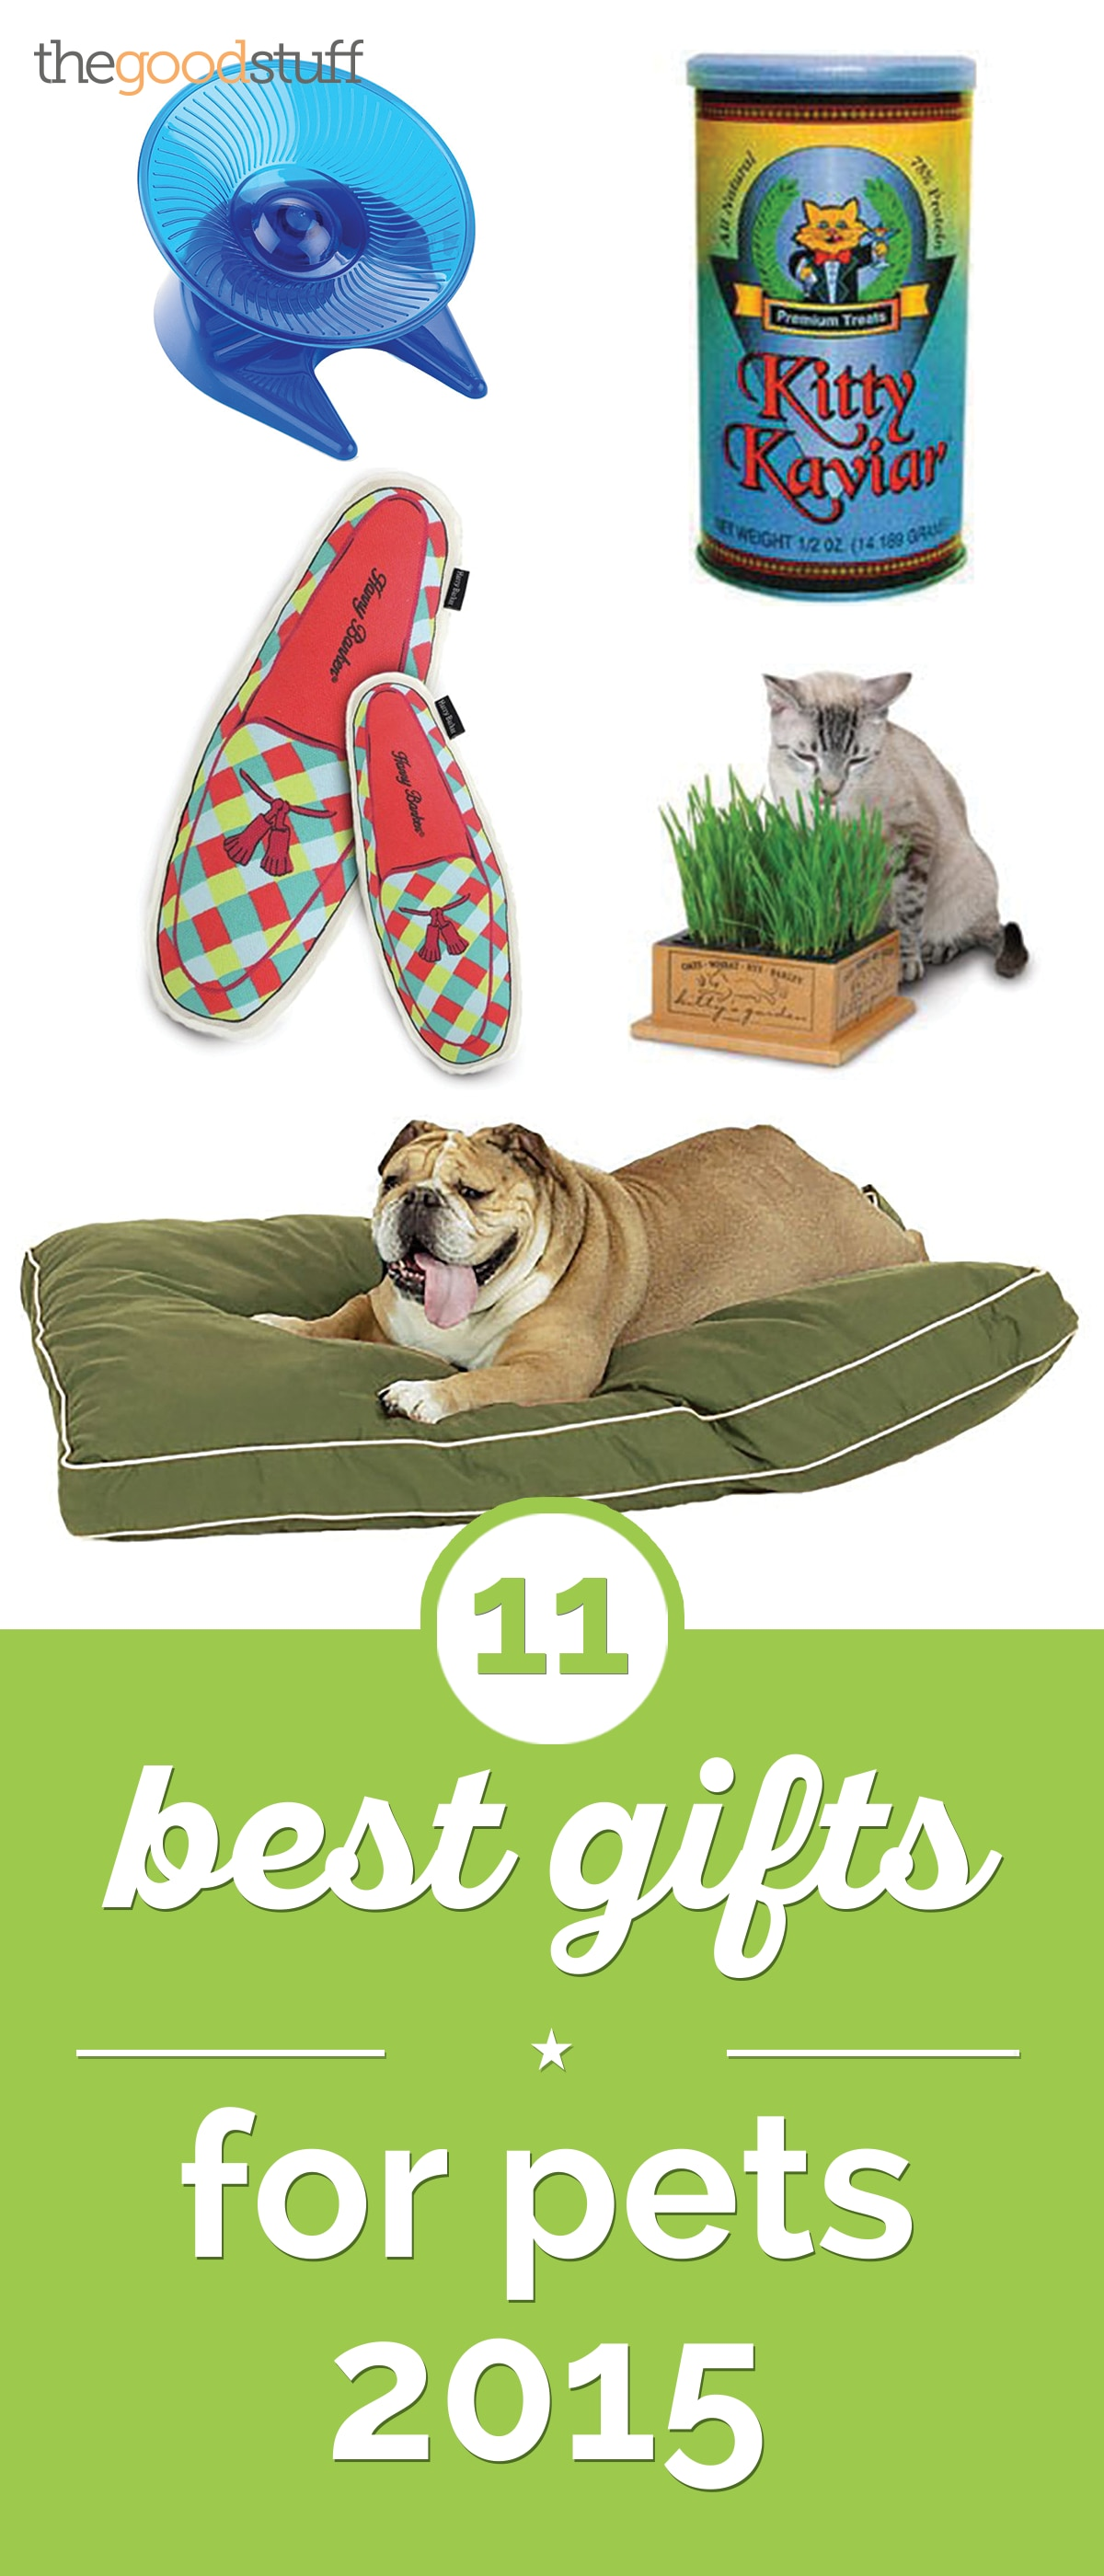 11 Best Gifts for Pets 2015 | thegoodstuff